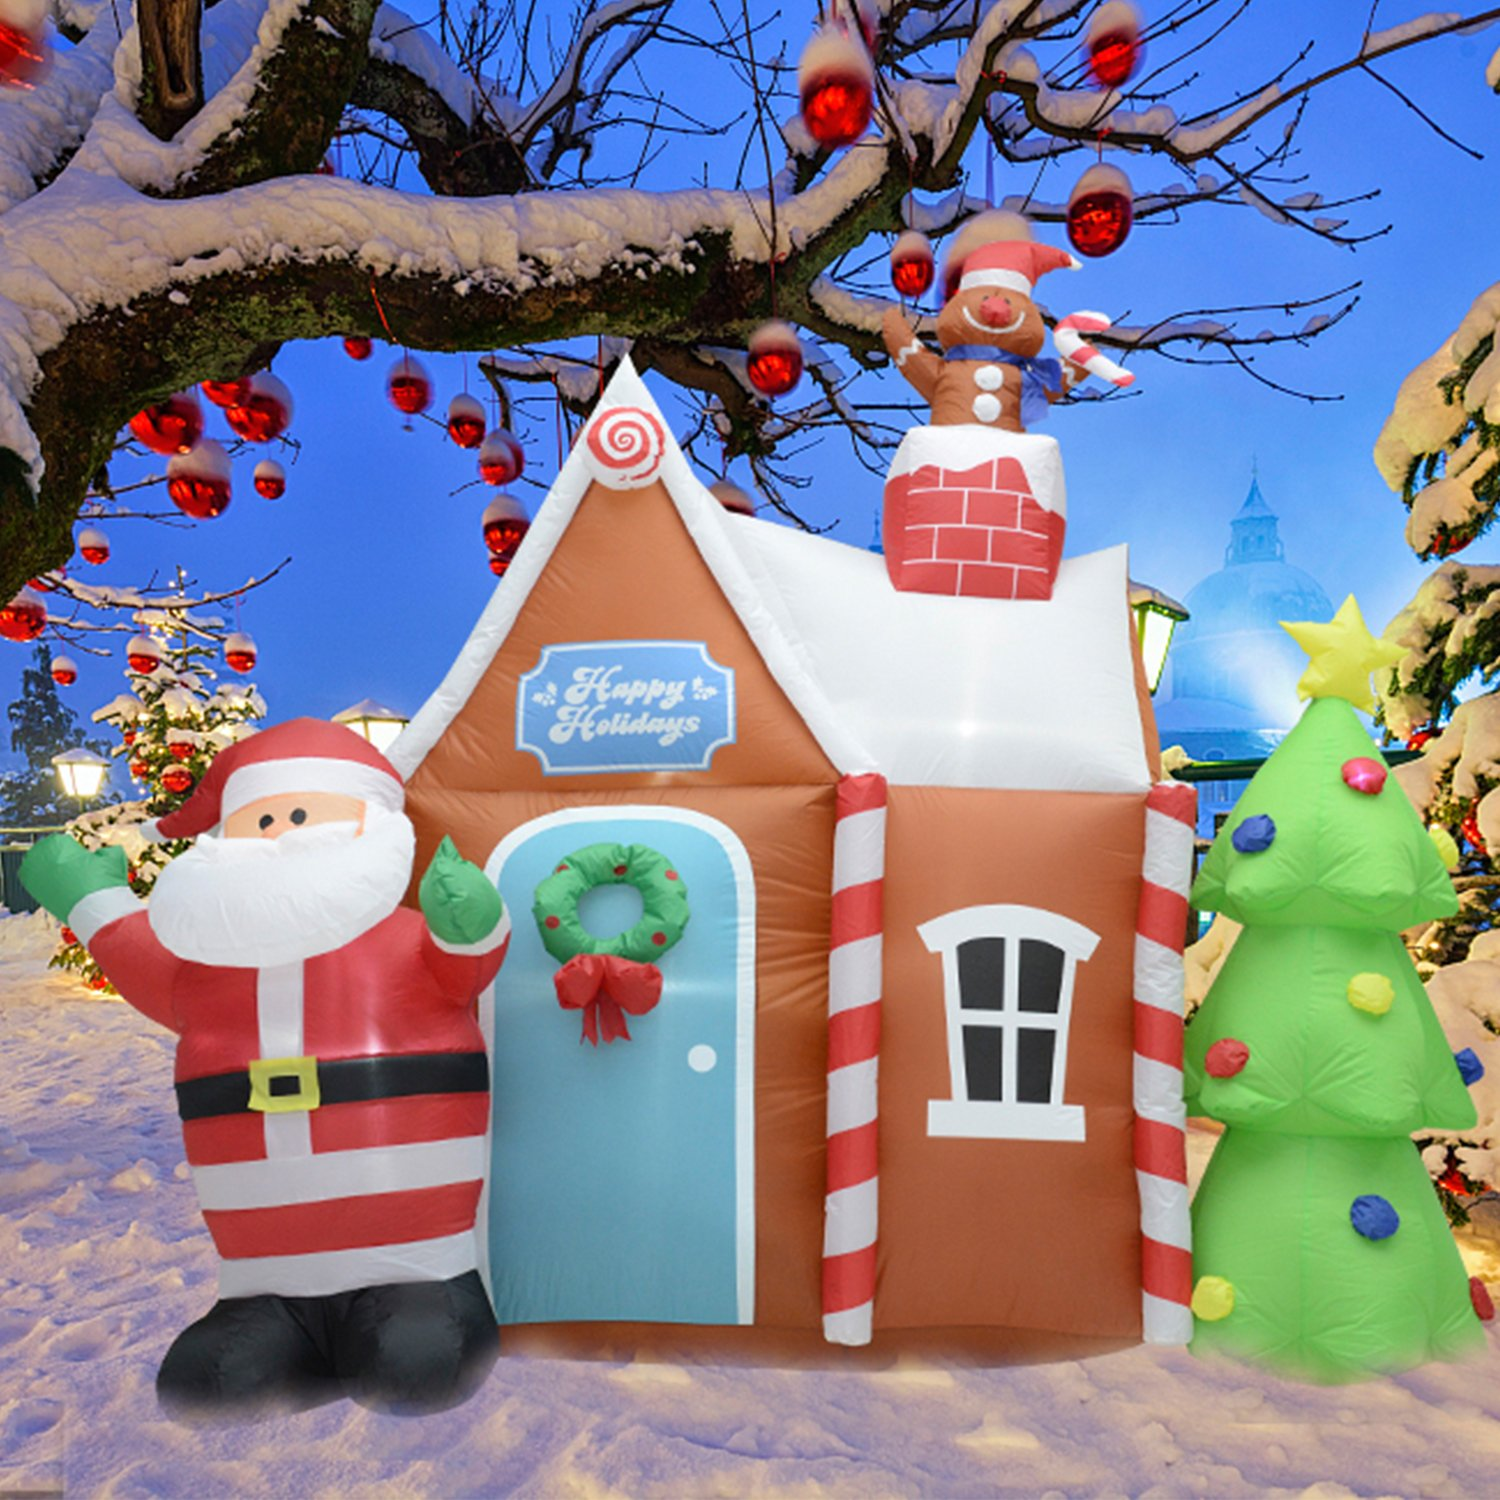 Fashionlite 6 Feet Inflatable Santa Claus with Christmas Tree and House Lighted Blow-Up Yard Party Decoration